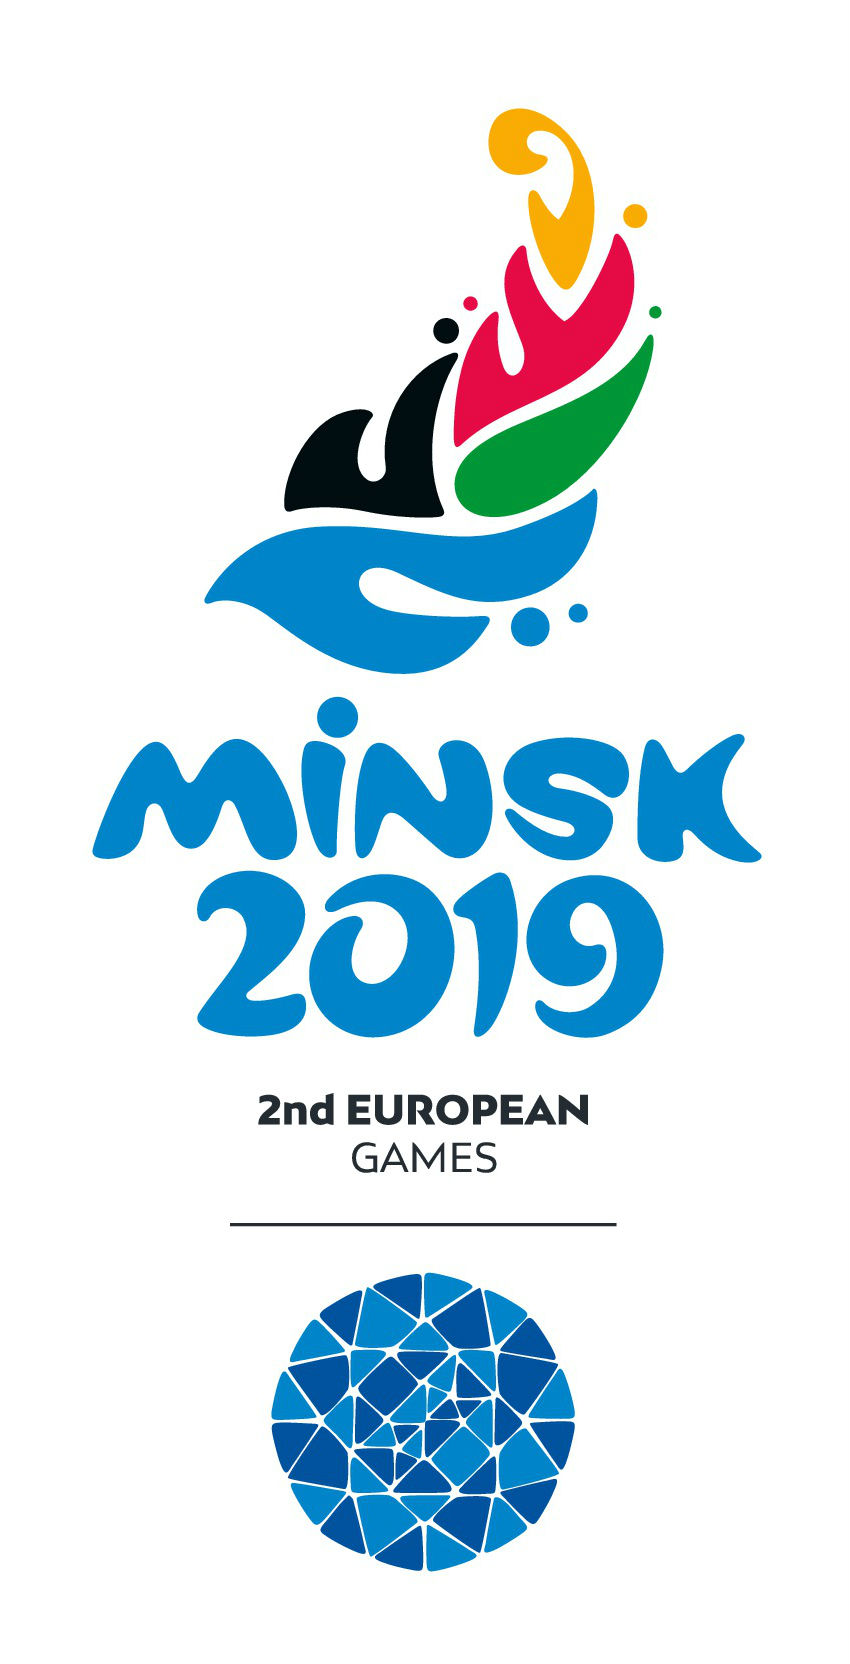 2nd European Games 2019 in Minsk